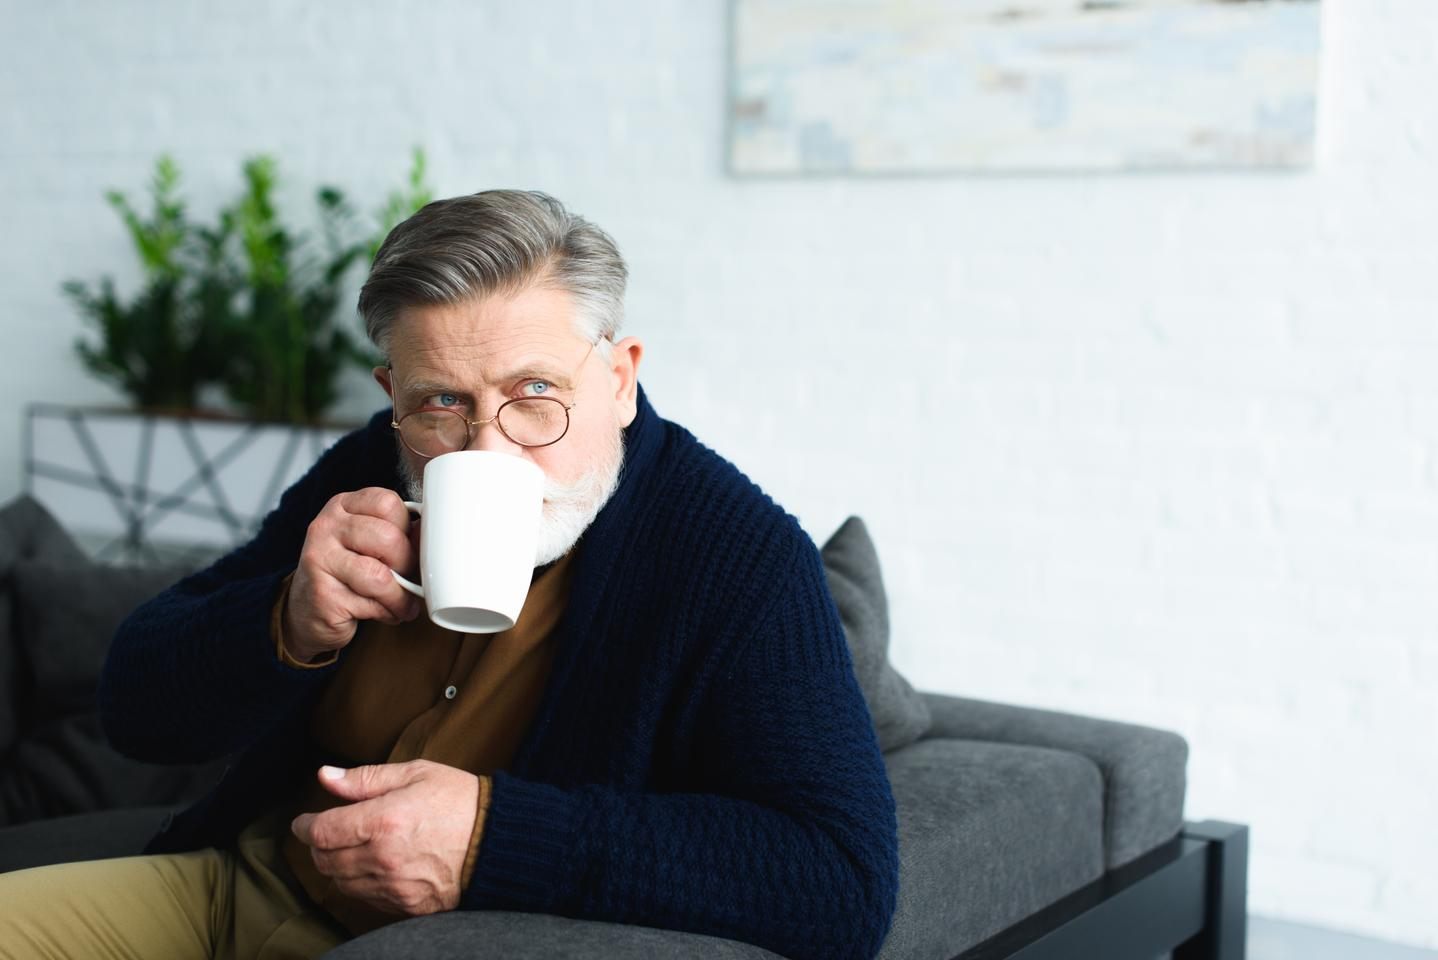 Your daily coffee - even decaf coffee - could extend your life